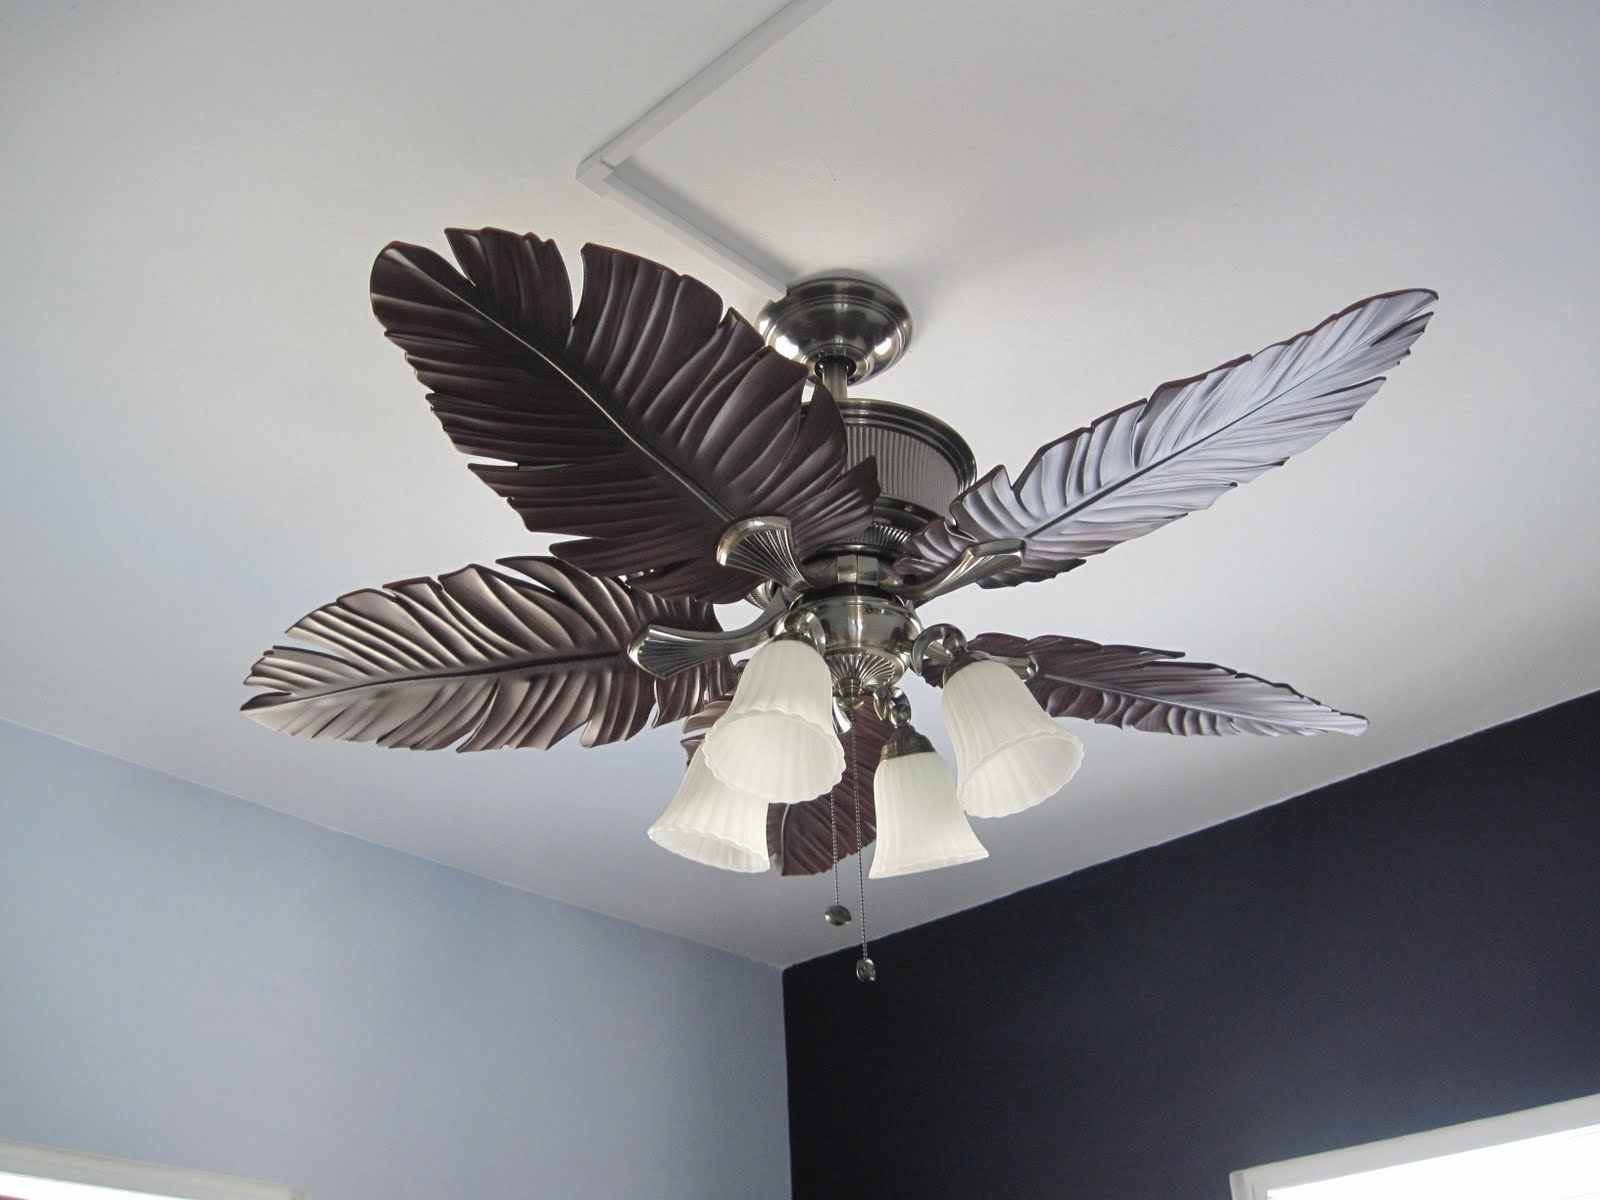 Tropical Outdoor Ceiling Fans With Lights Regarding Current Ceiling Lights : Tropical Ceiling Fans With Lights For Low Ceilings (View 12 of 20)